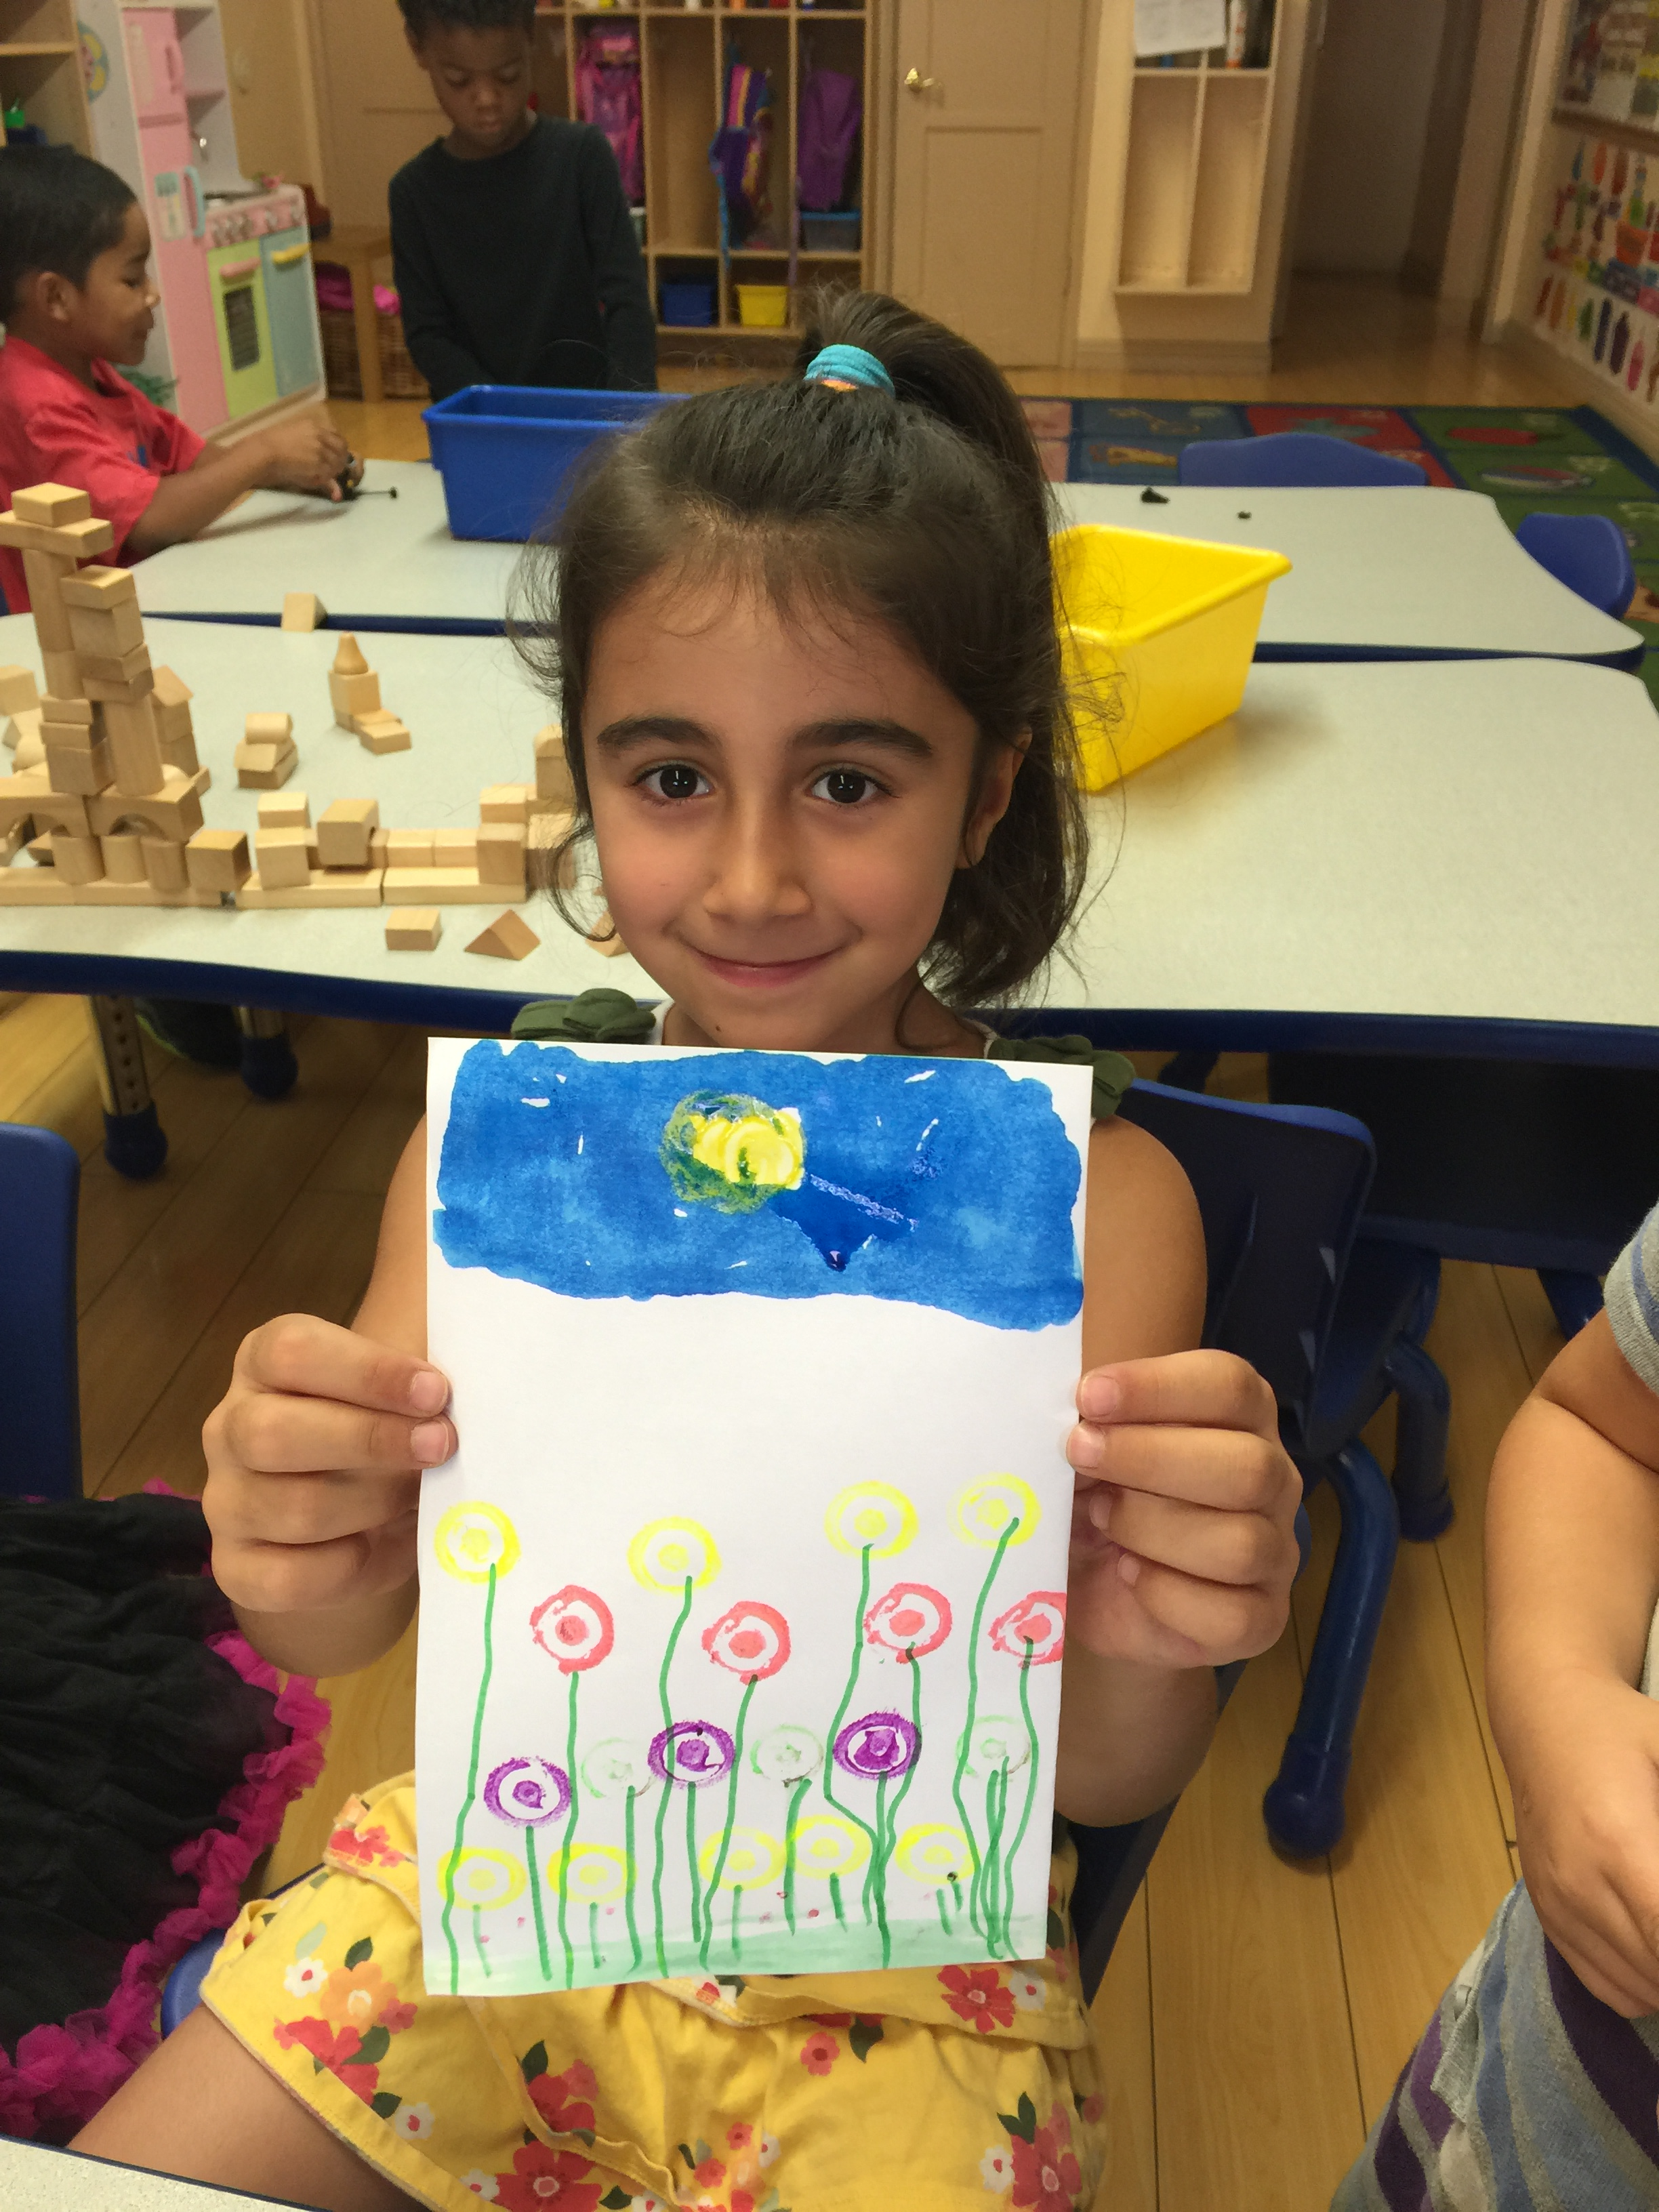 Fun art activity at Sherman Oaks preschool